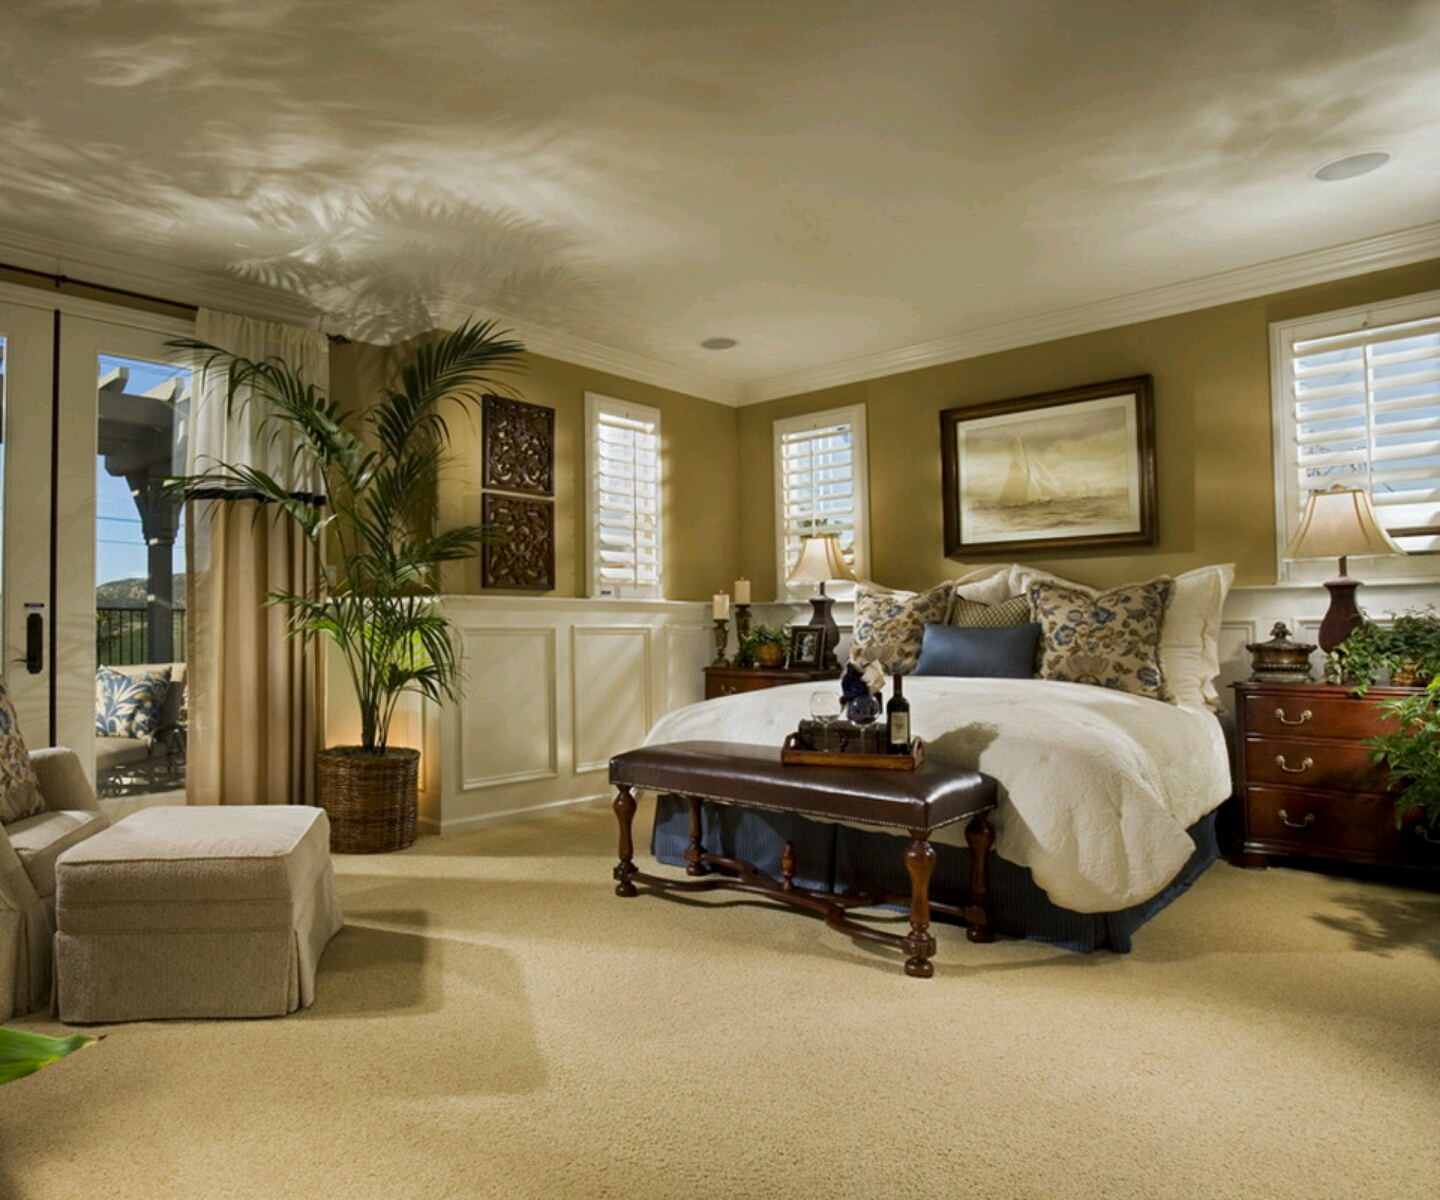 New Home Designs Latest.: Modern Homes Bedrooms Designs